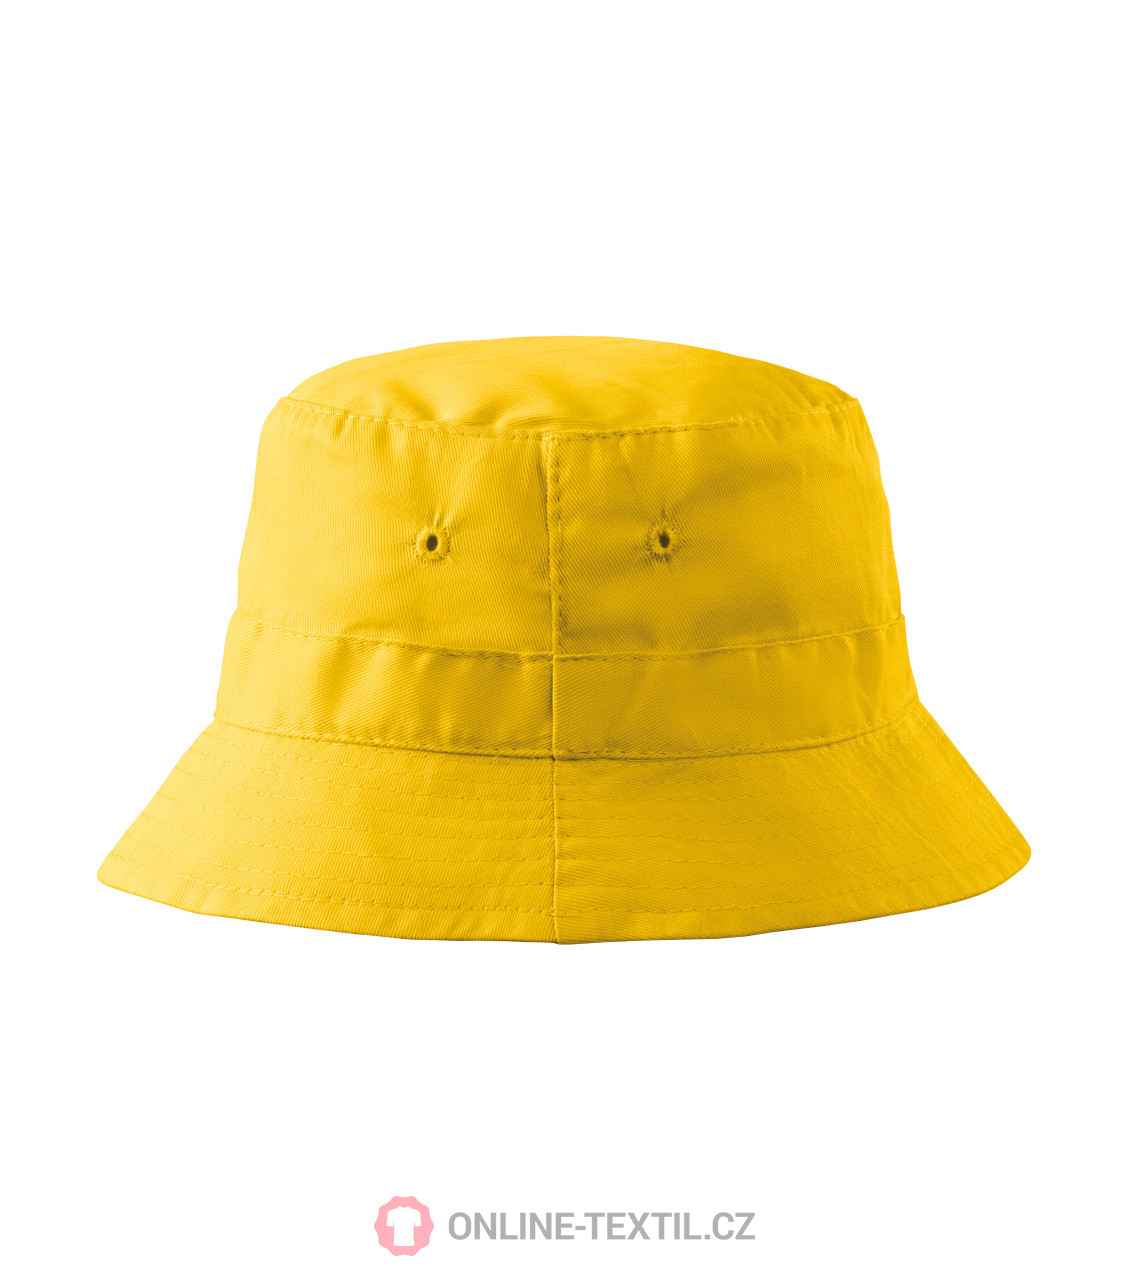 f508a8b818d ADLER CZECH Hat Classic Kids 322 - yellow from the MALFINI ...